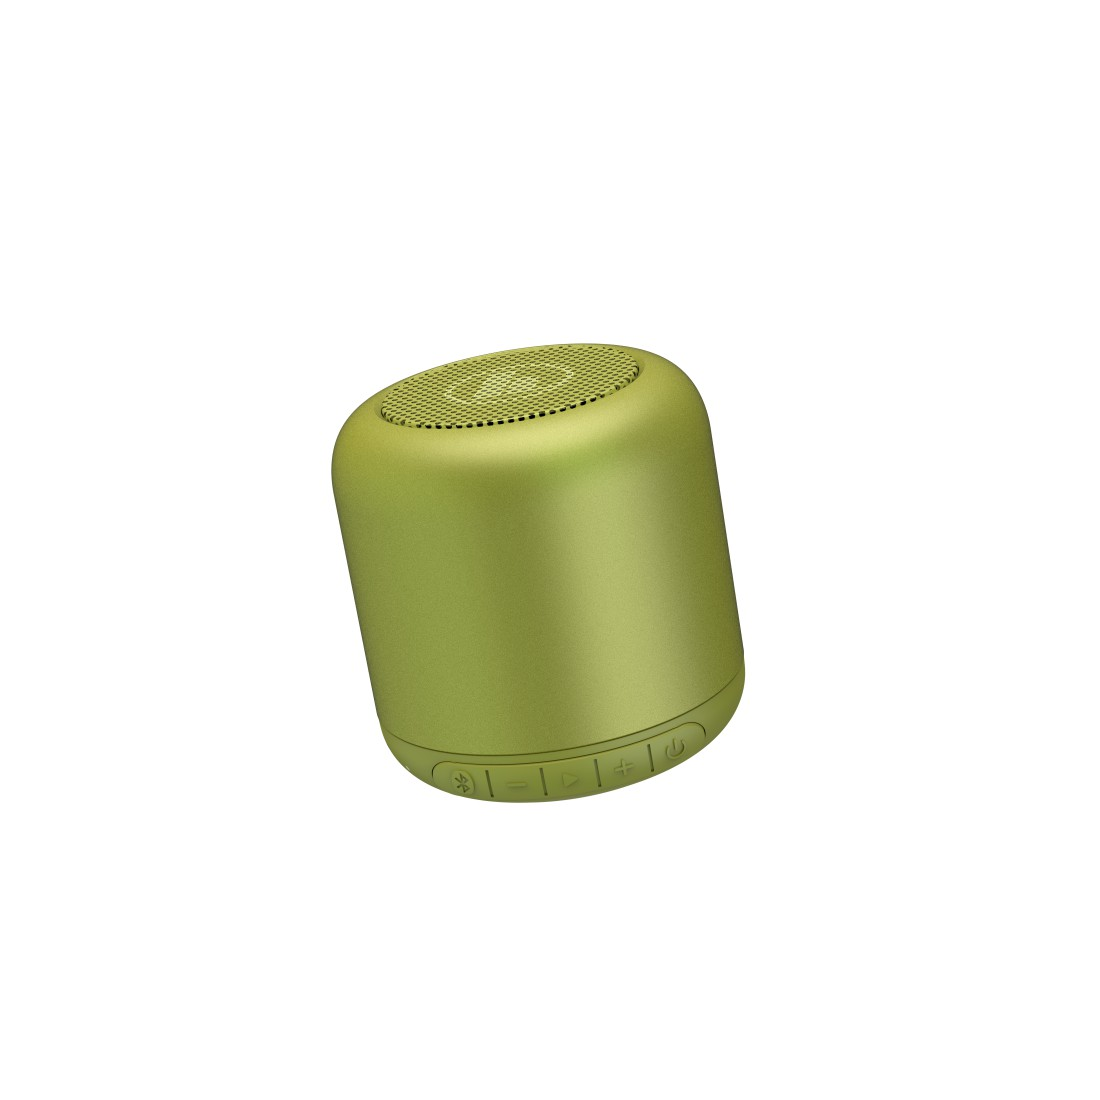 "abx High-Res Image - Hama, Enceinte Bluetooth® ""Drum 2.0"", 3,5 W, vert jaune"